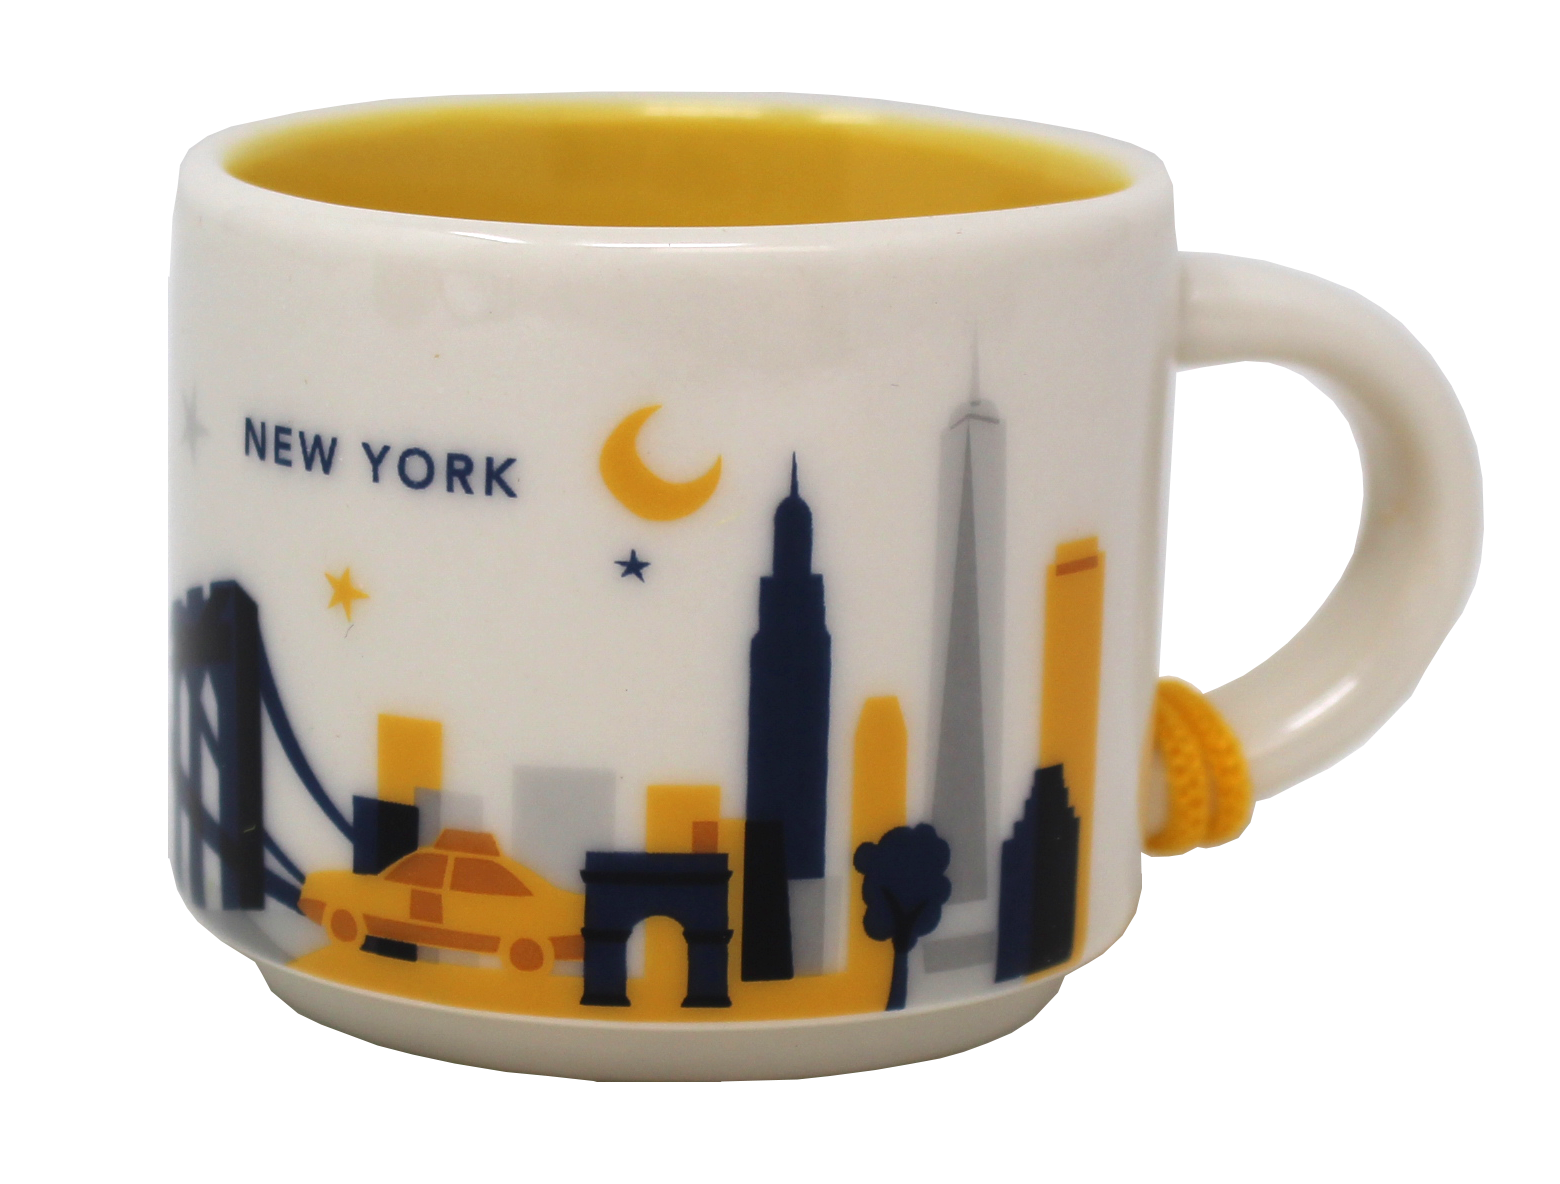 Starbucks You Are Here Series New York Ceramic Demitasse Ornament Mug, 2 Oz